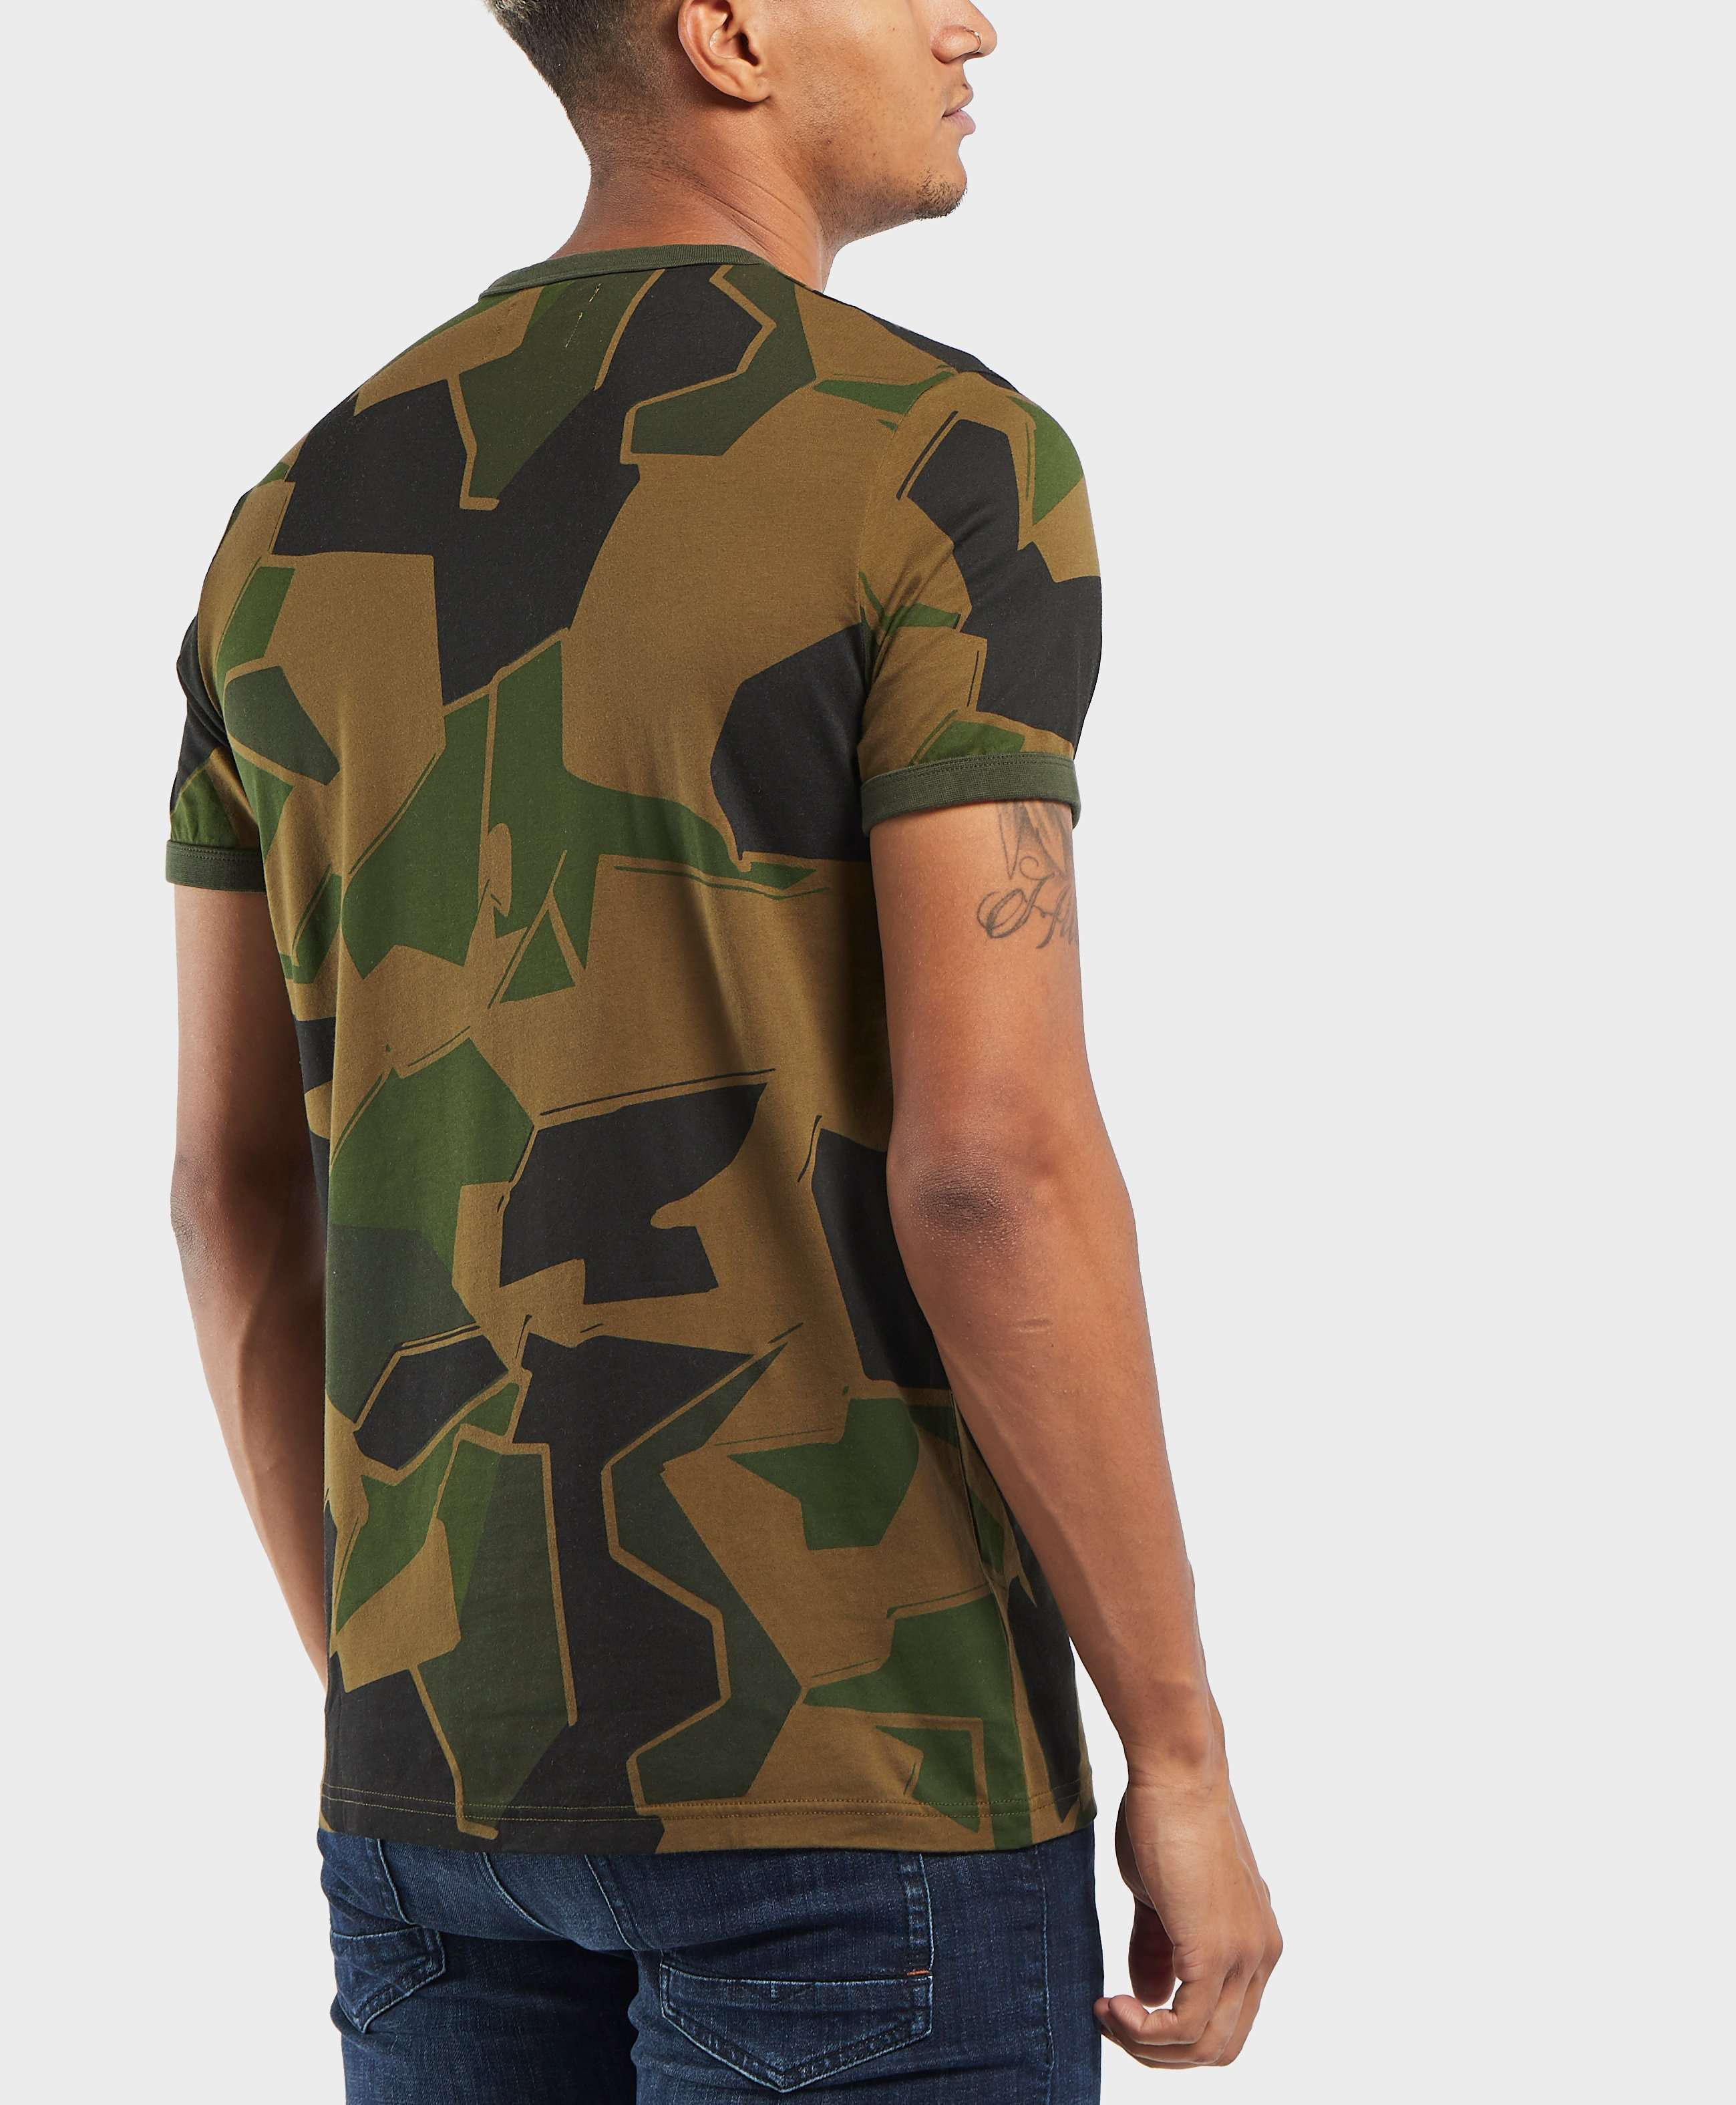 Fred Perry x Arktis Camo Short Sleeve T-Shirt